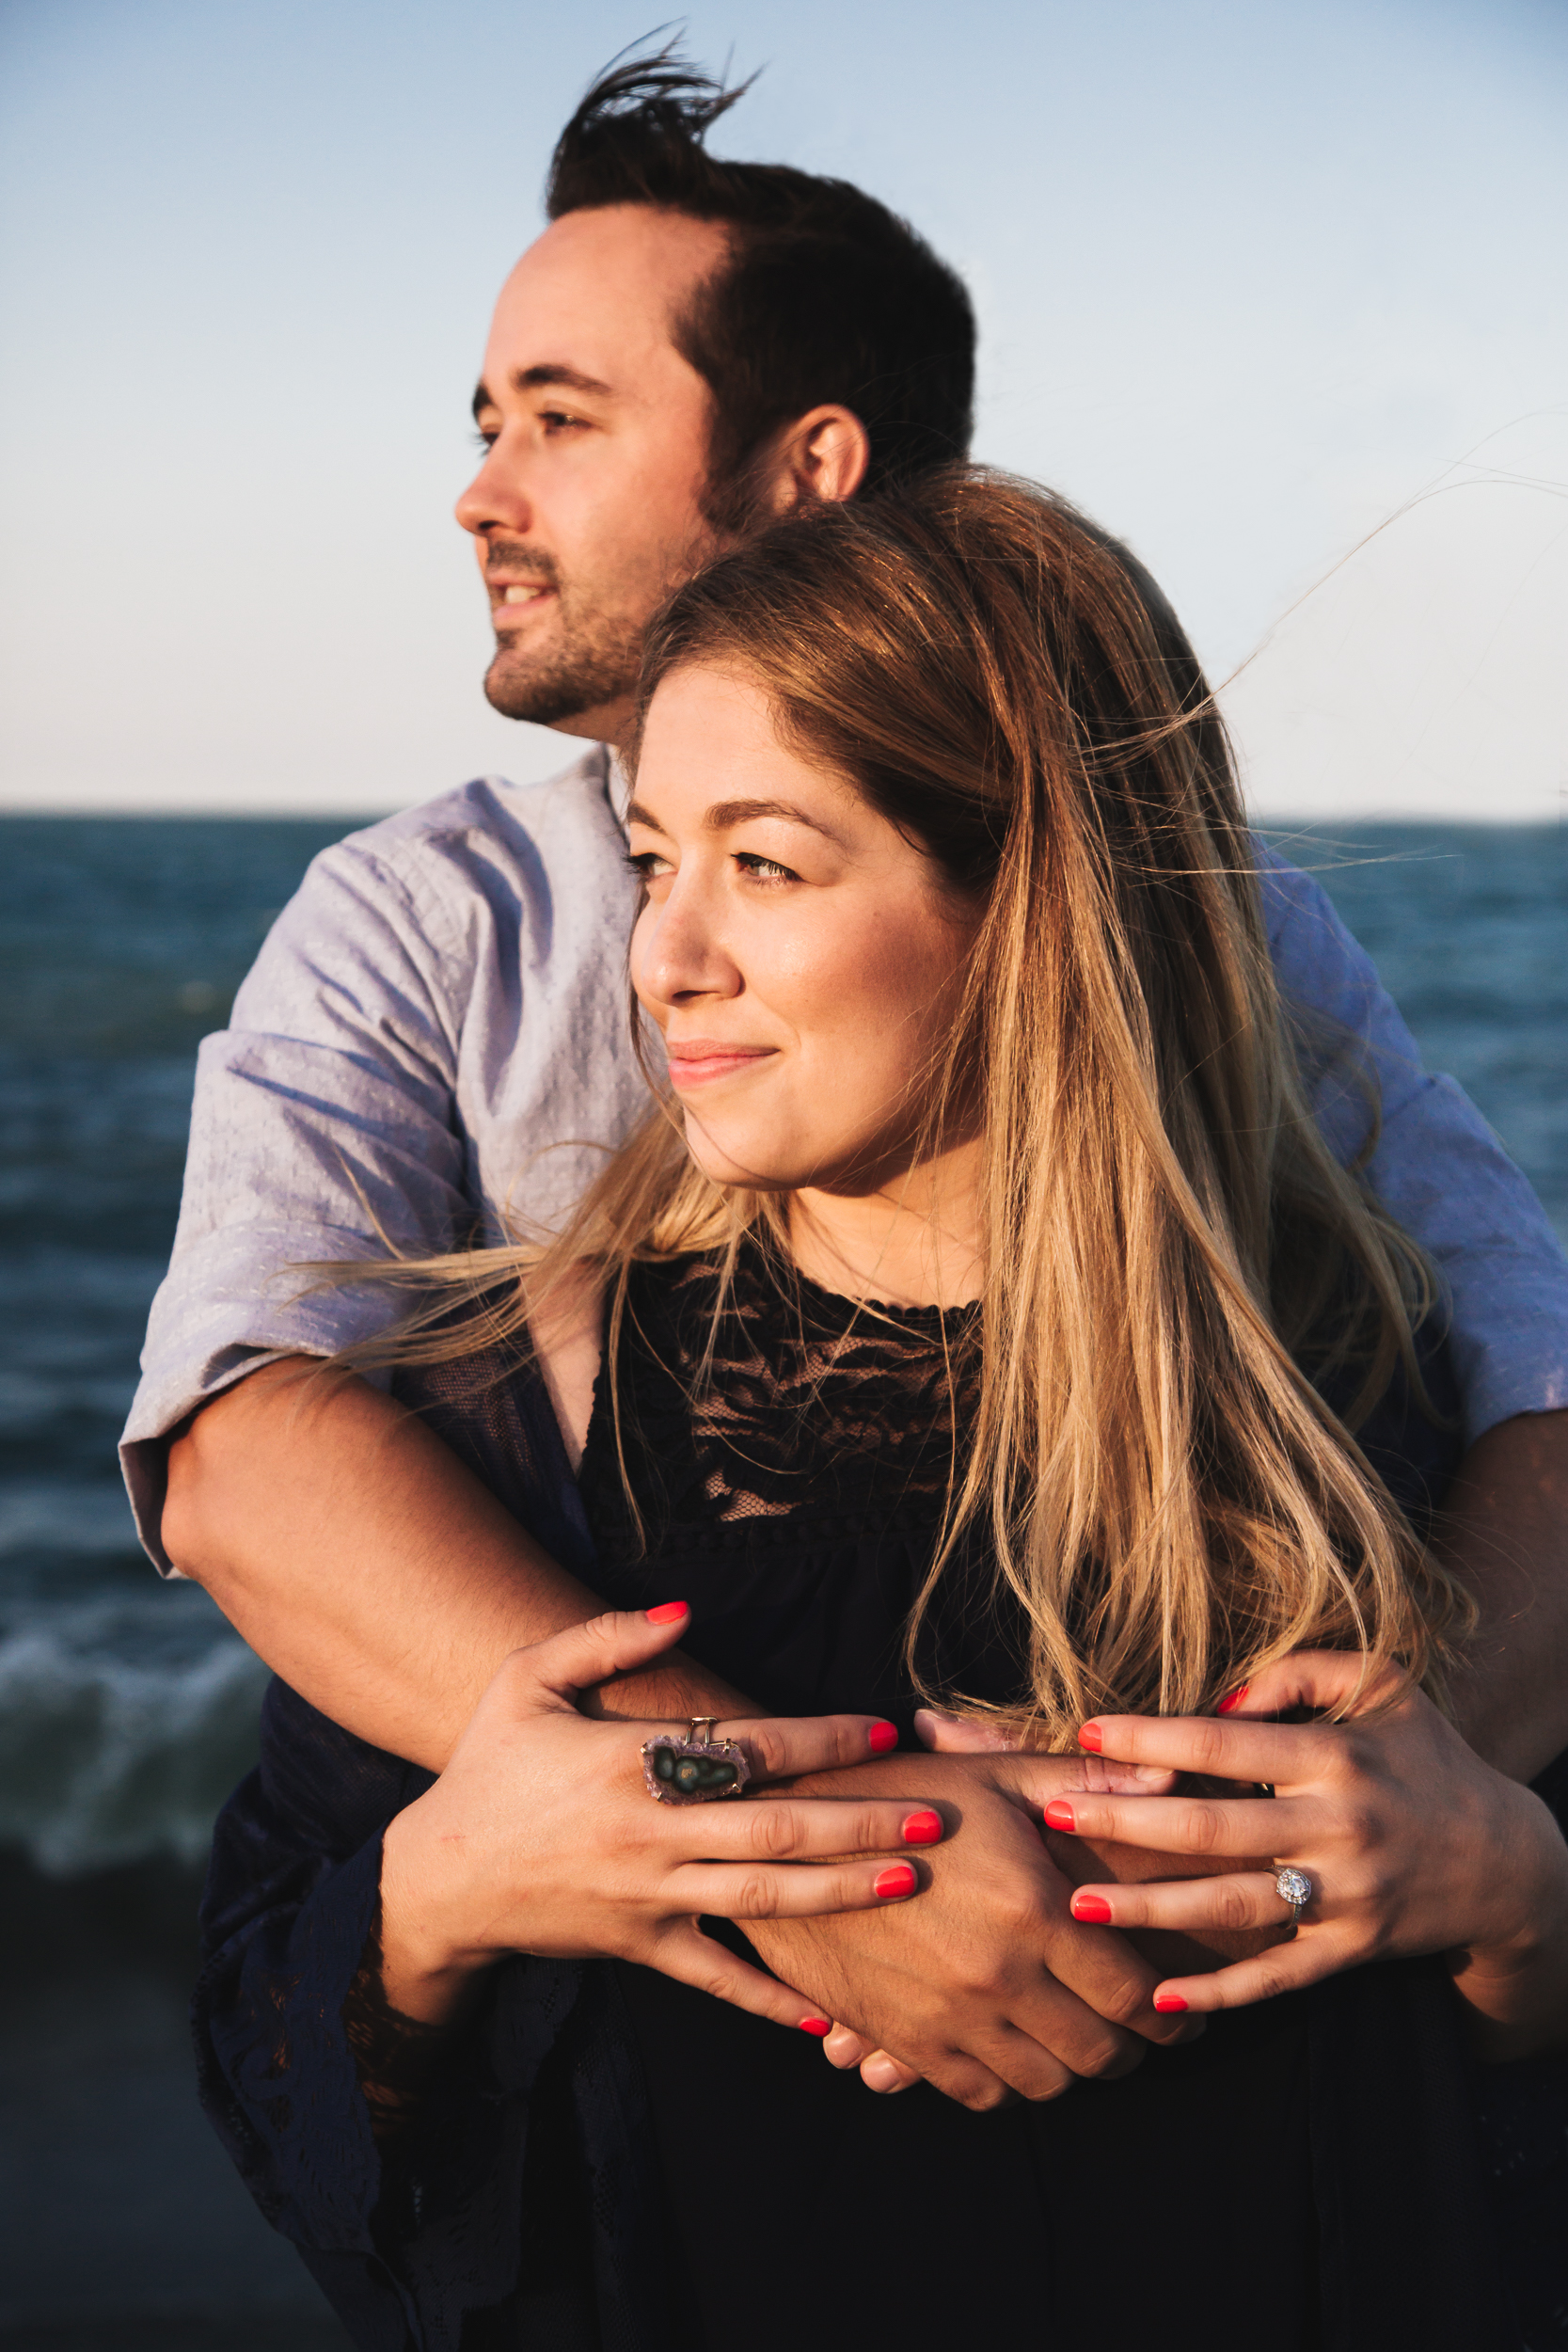 chicago_beach_engagement-8.jpg